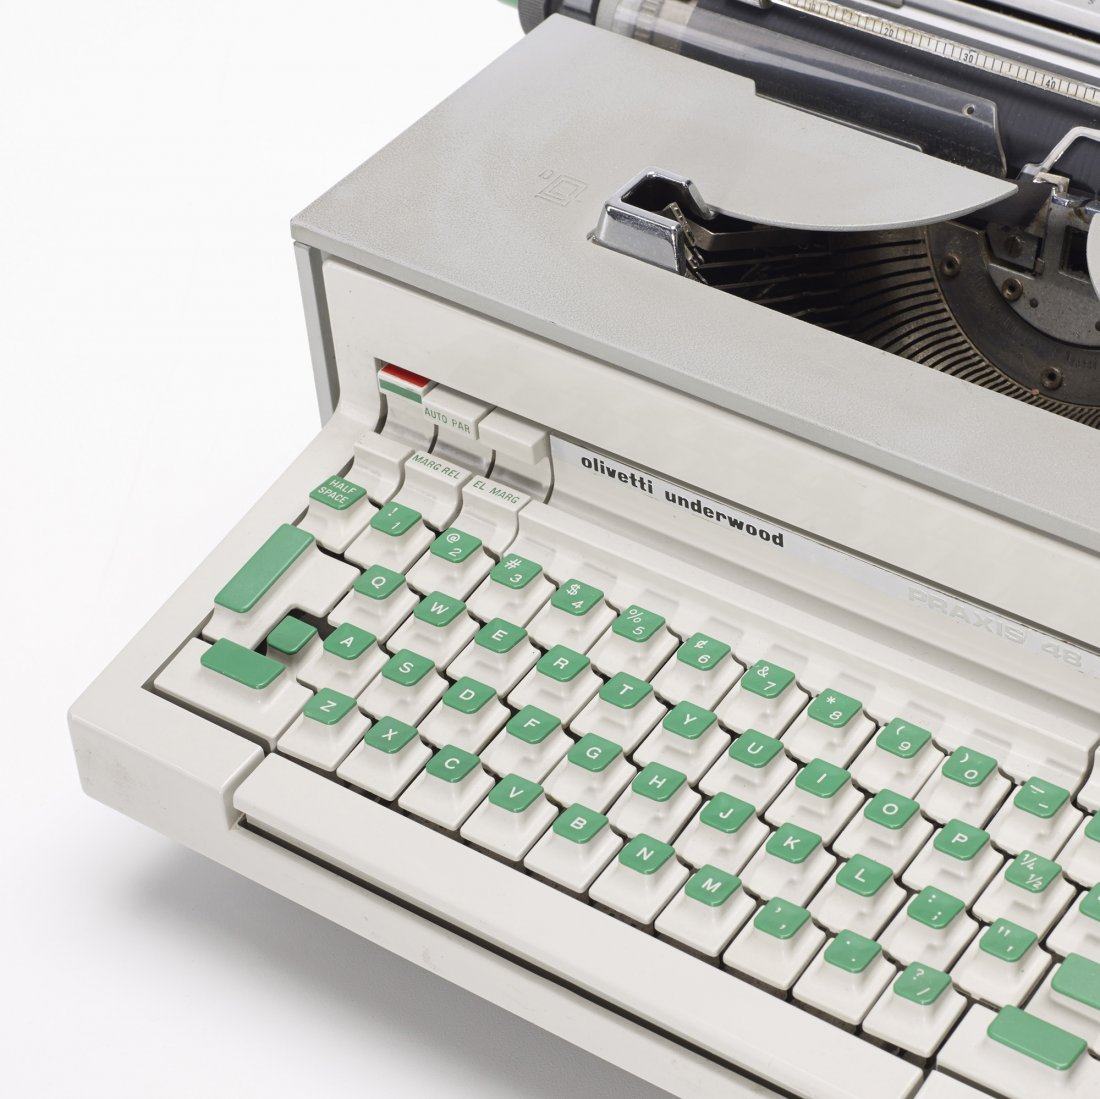 Ettore Sottsass Praxis typewriter and calculator - 3